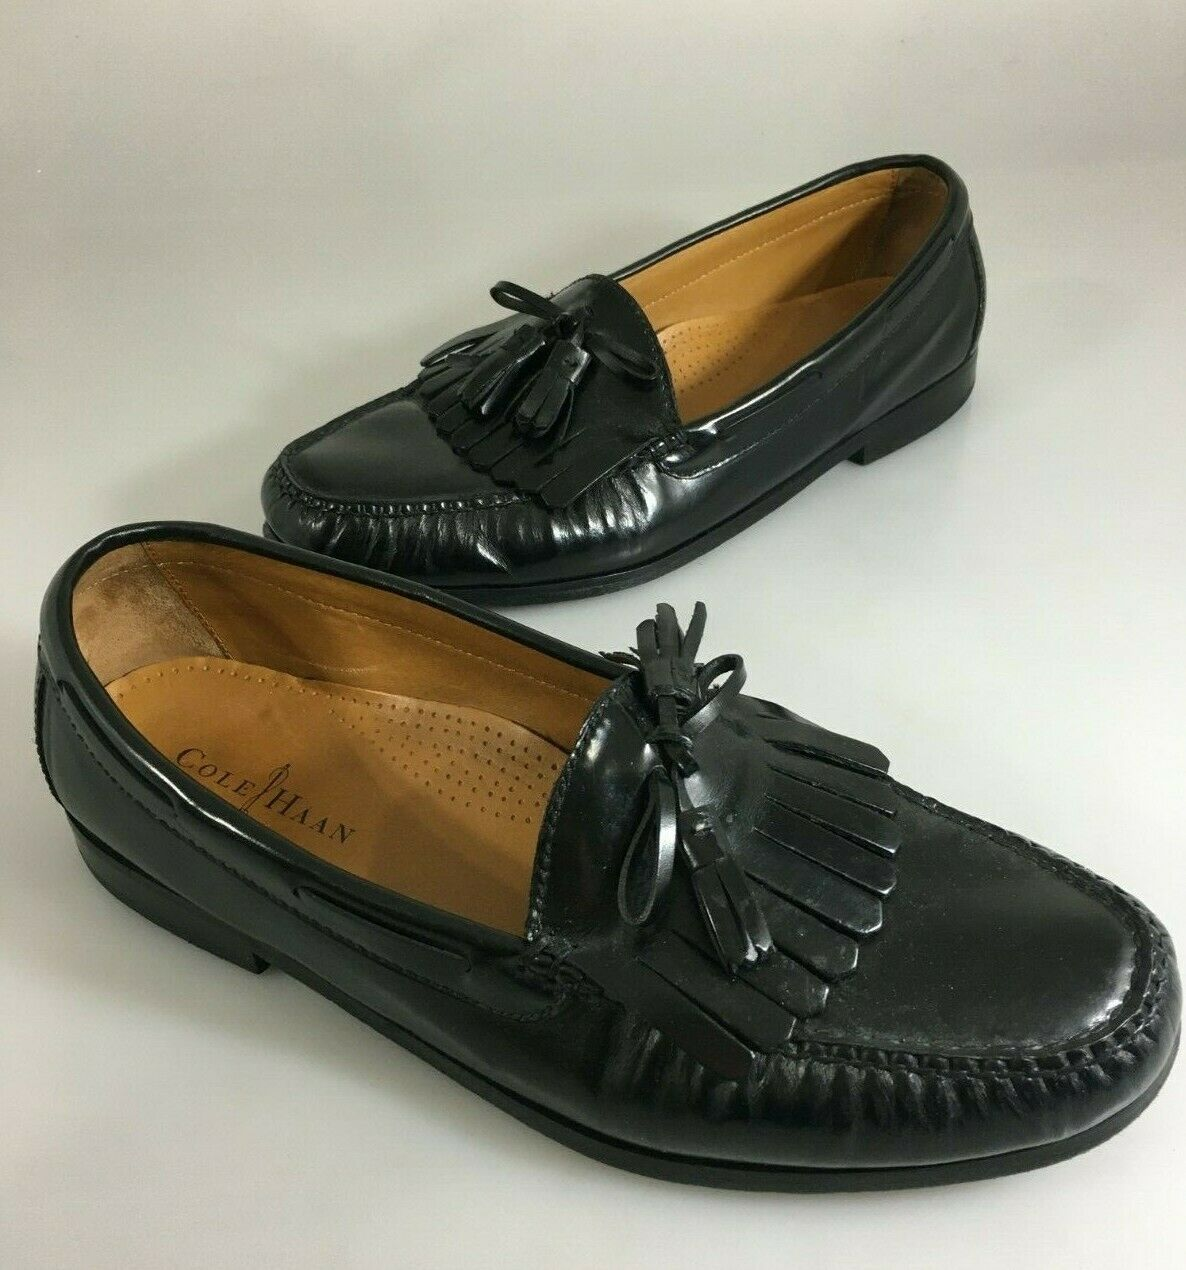 Primary image for Cole Haan Mens 11 EEE Black Leather Kiltie Tassel Loafers Shoes Slip-Ons